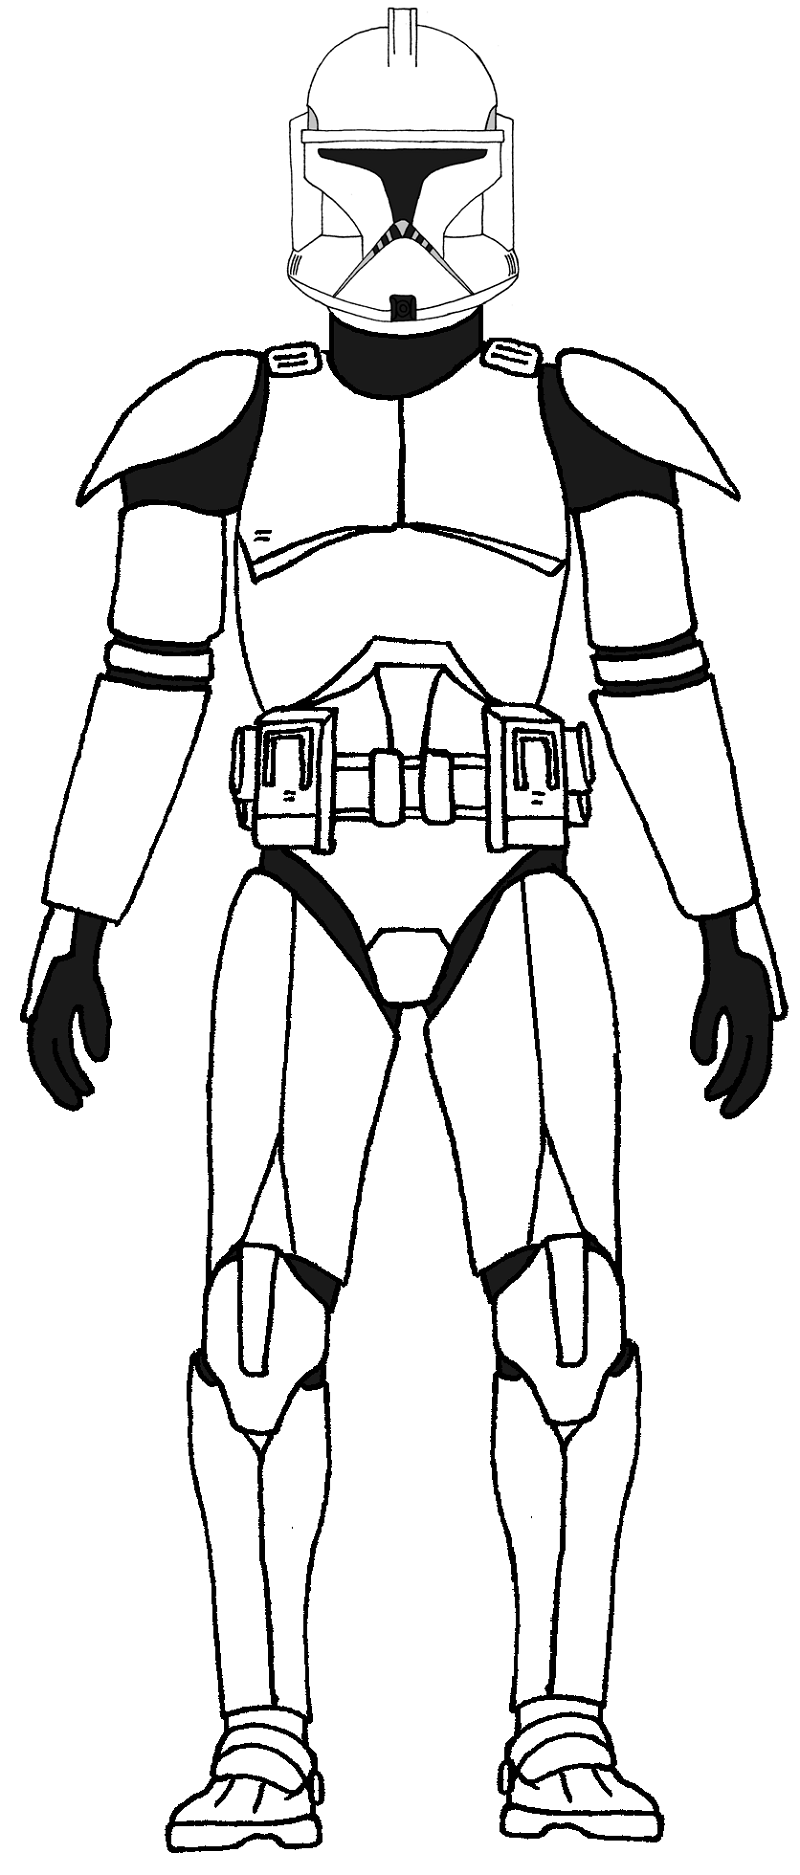 Clone Trooper Coloring Pages Educative Printable Star Wars Clone Wars Star Wars Pictures Clone Trooper